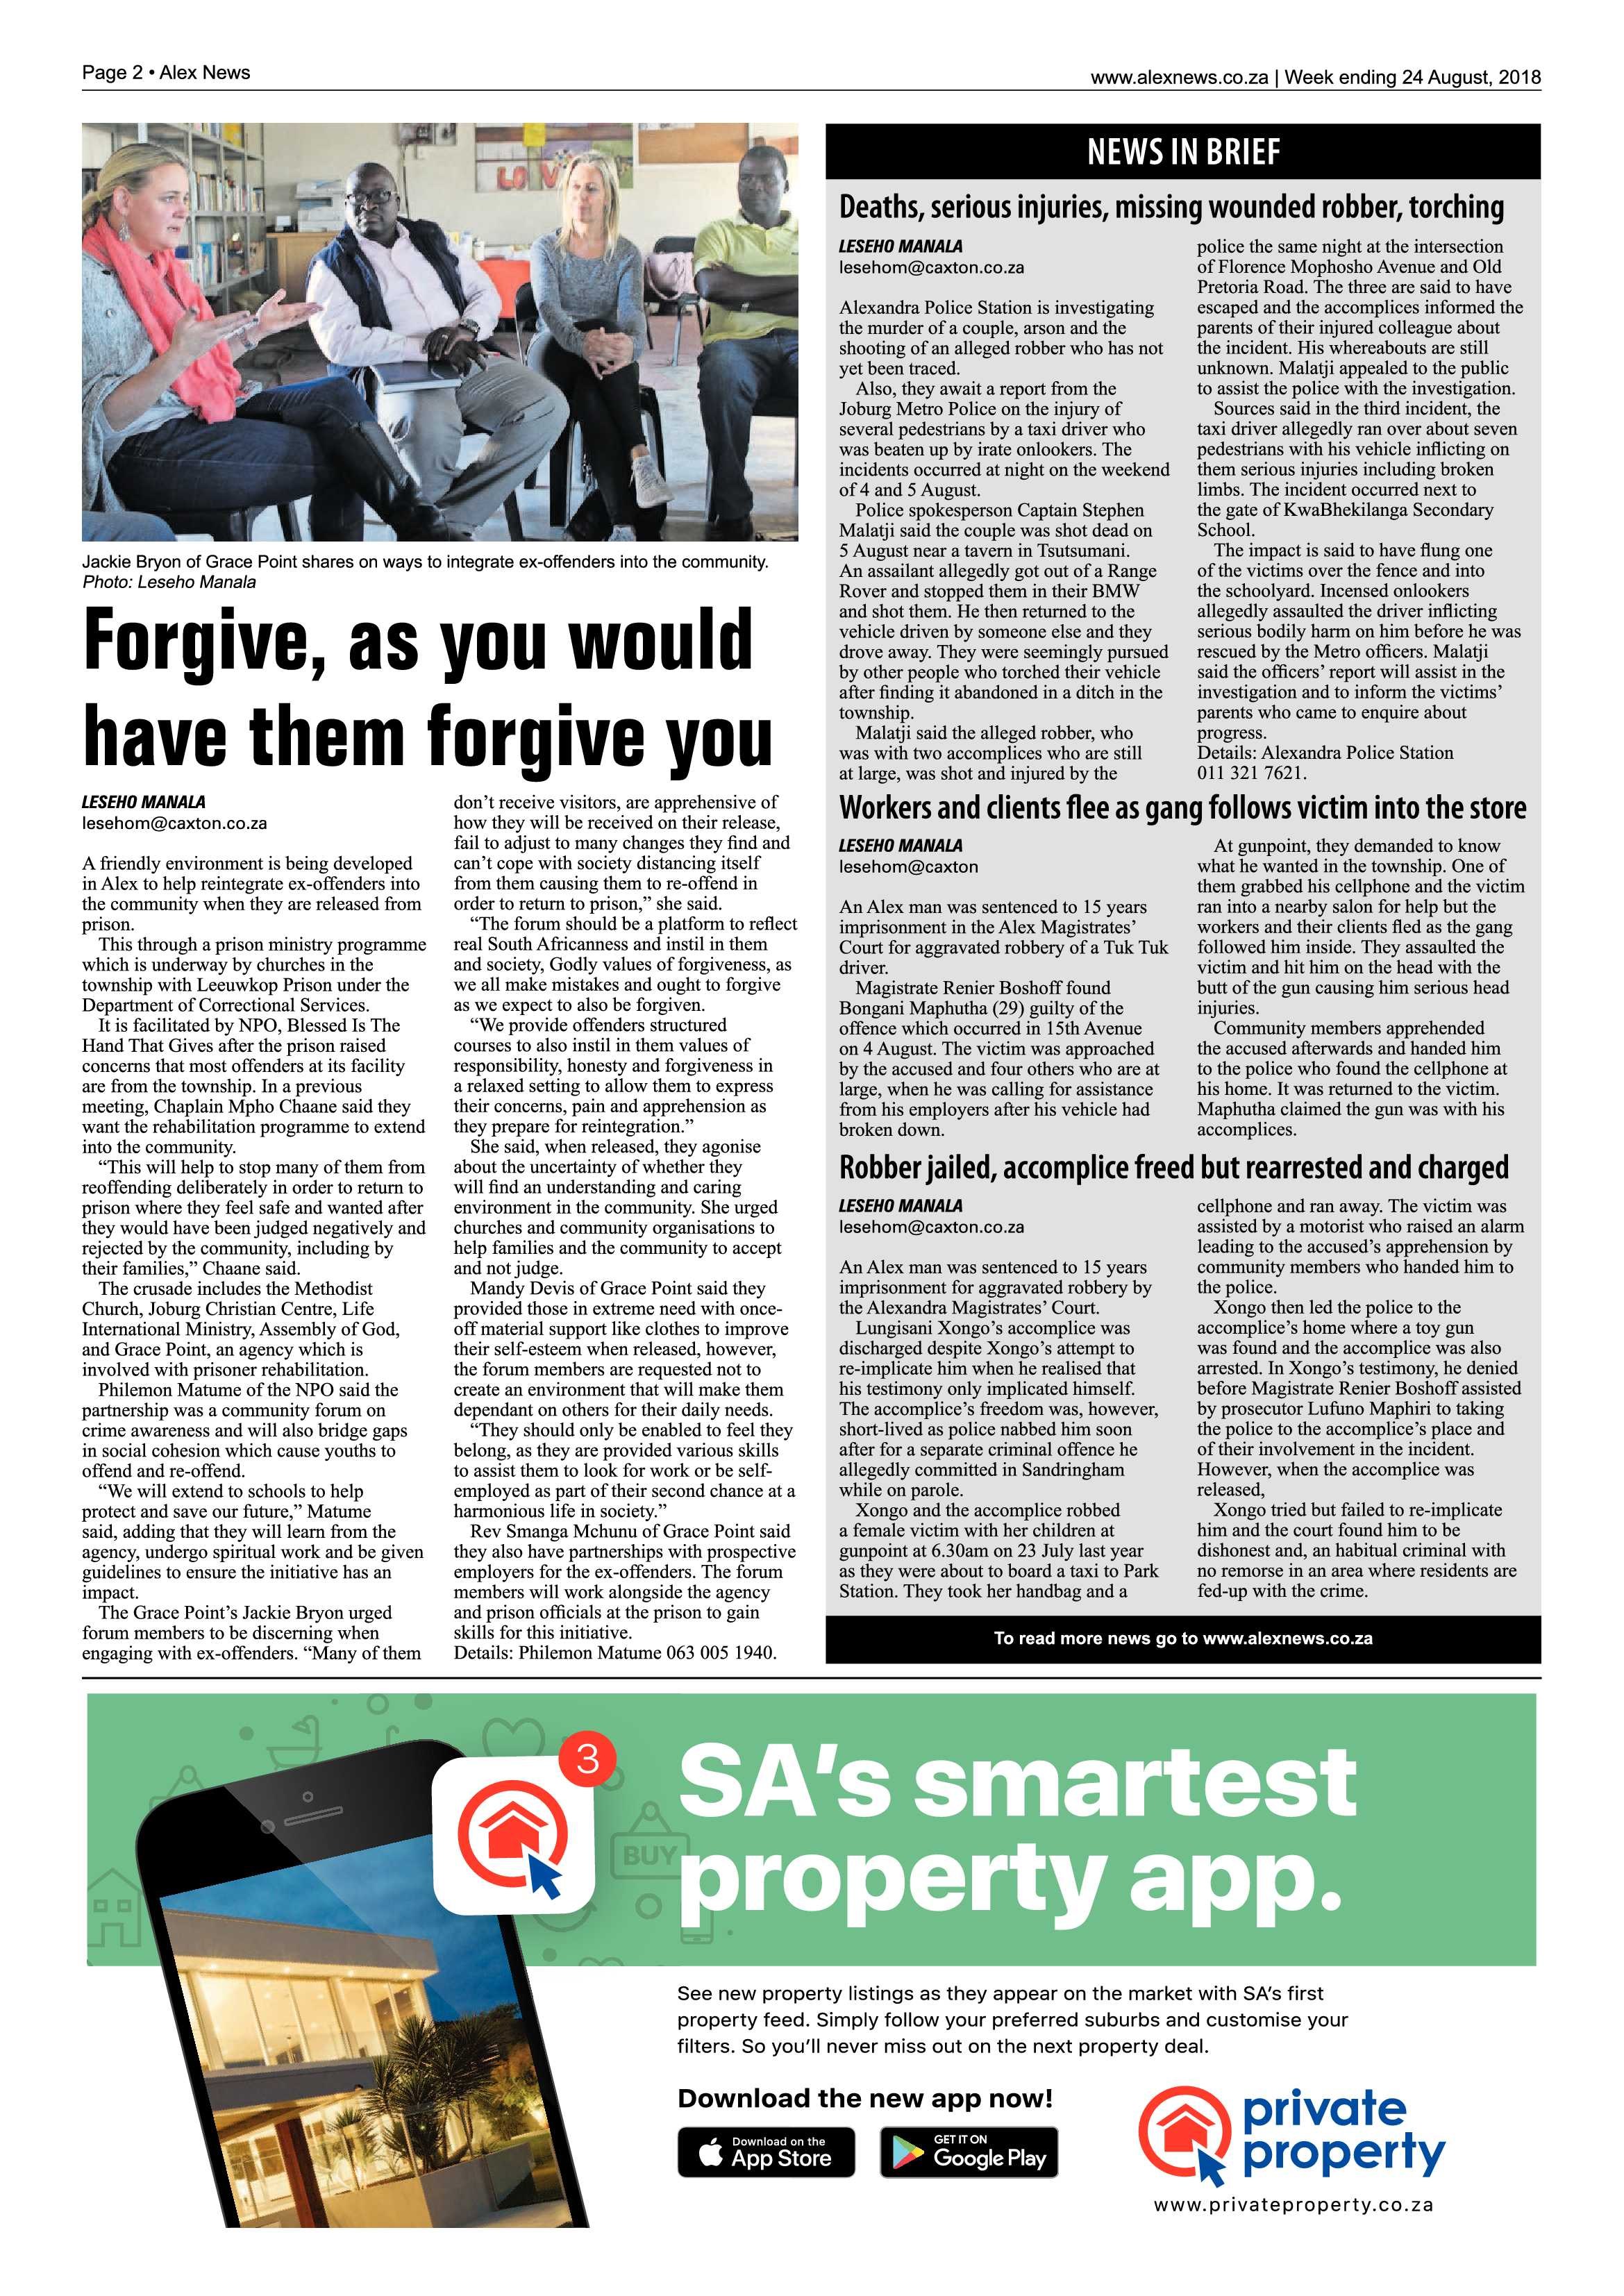 alex-24-august-2018-epapers-page-2